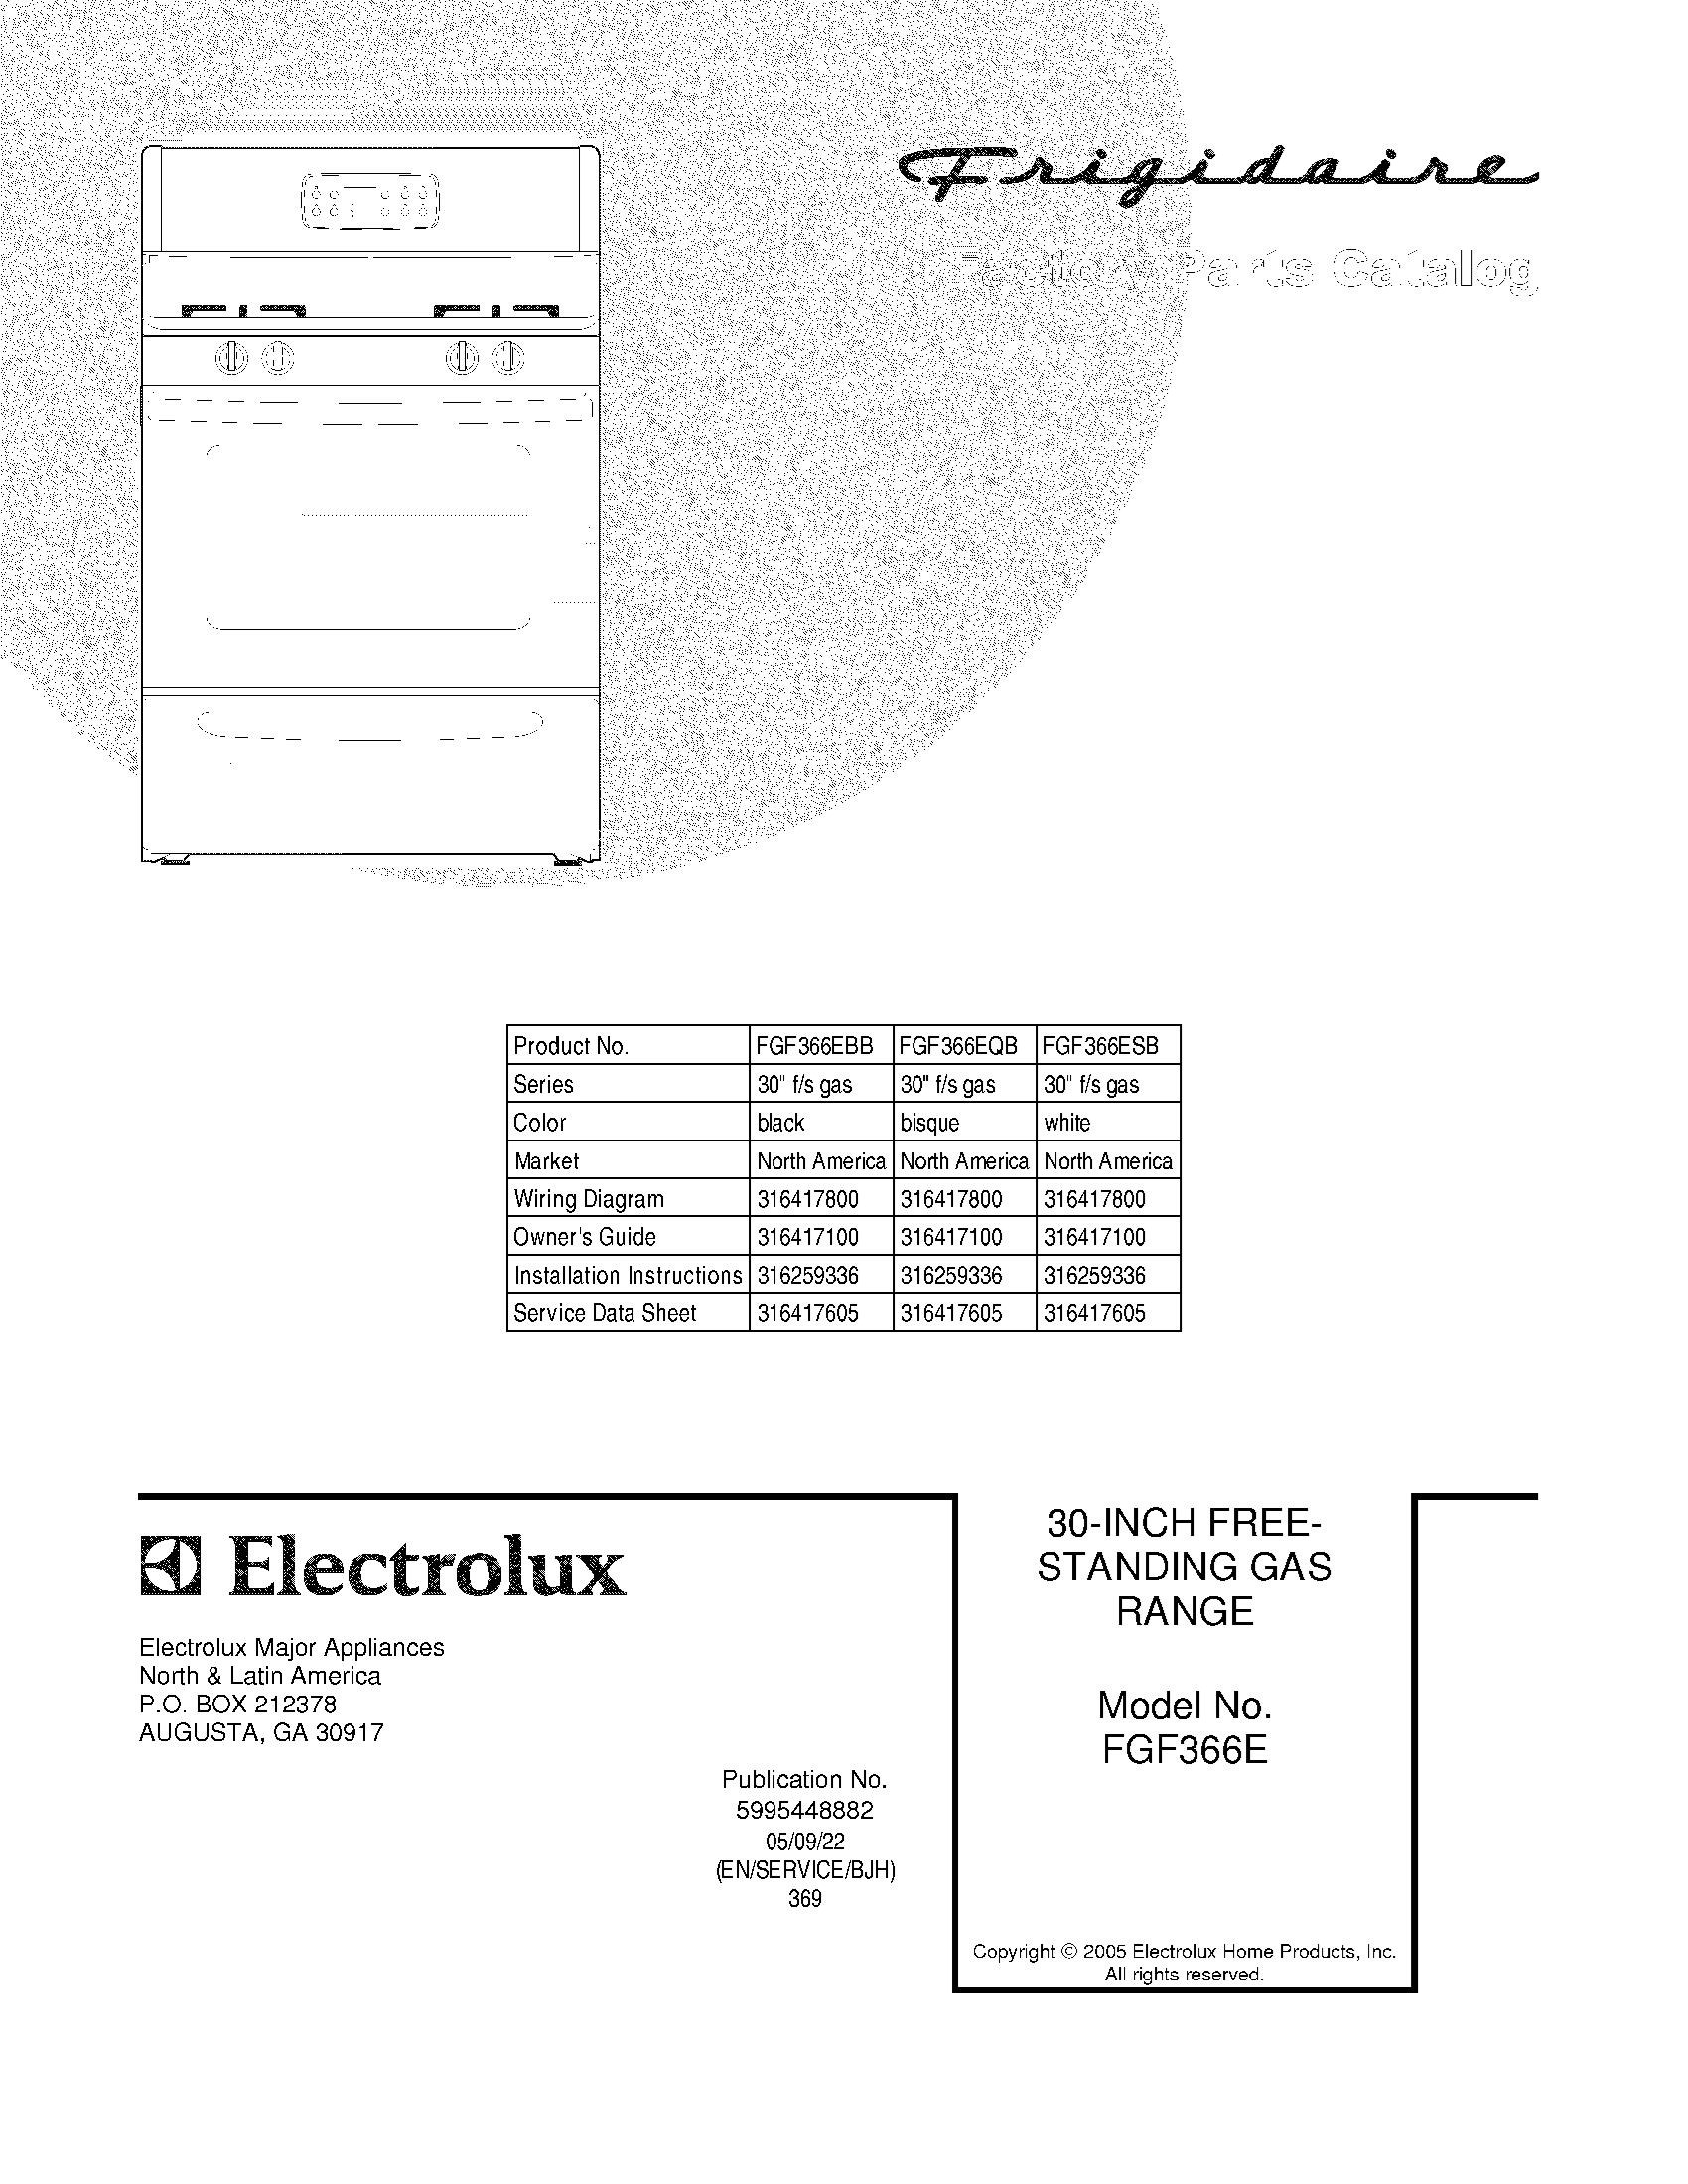 Electrolux Oven Repair Manual Pictures